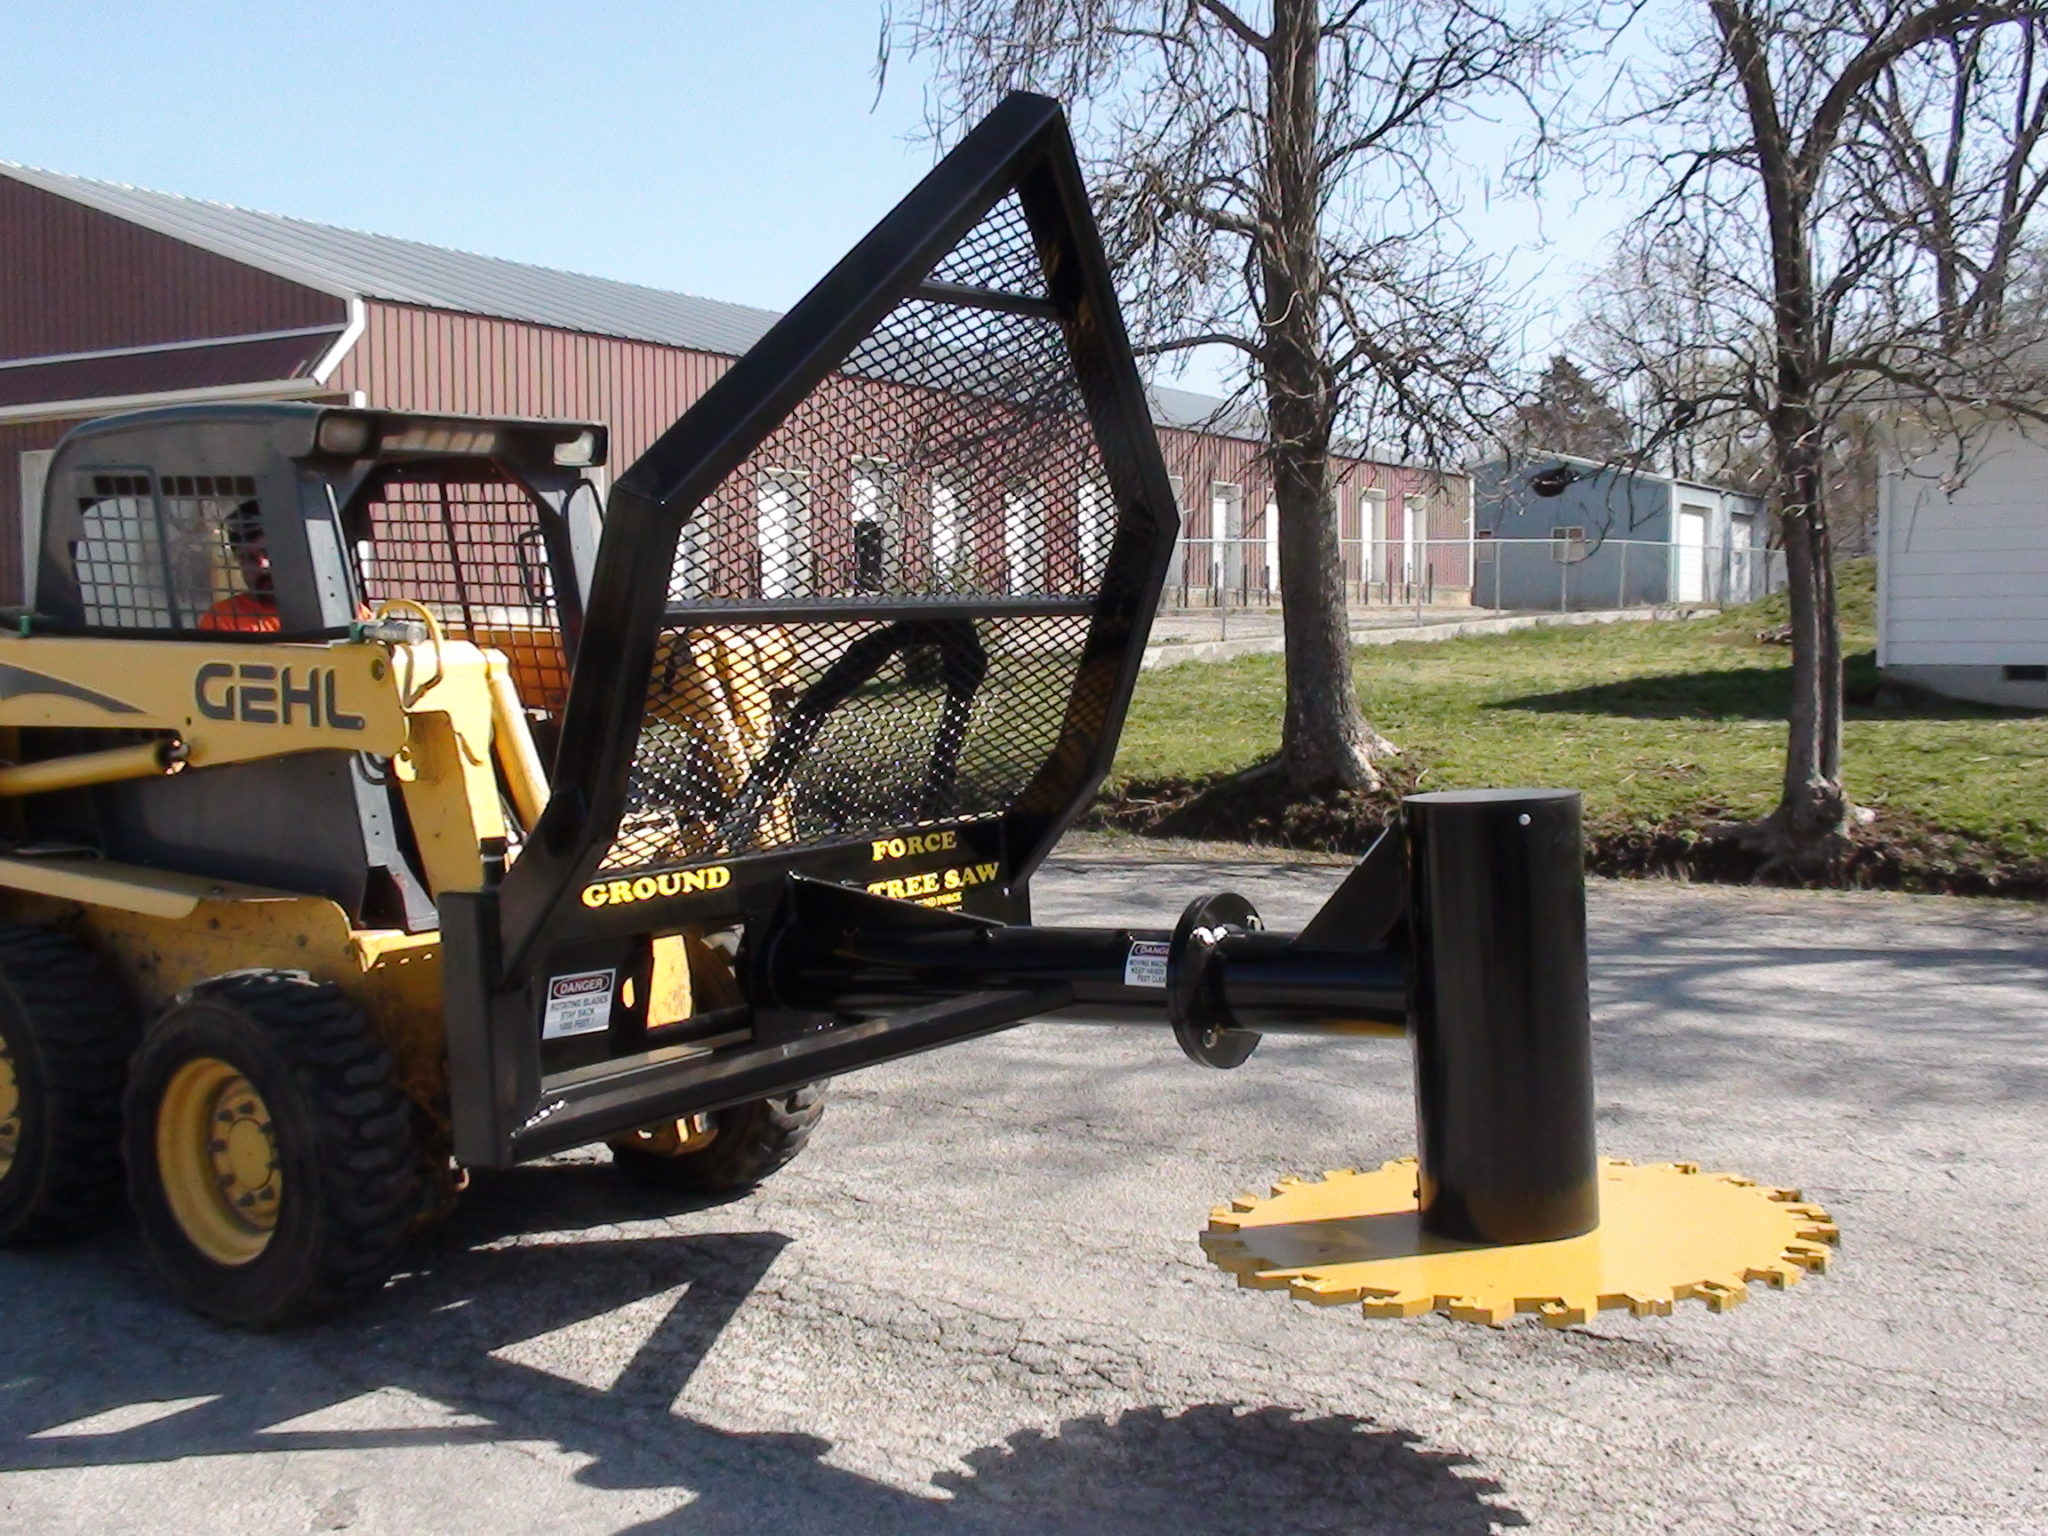 Skid Steer And Auger Attachments Harleman Manufacturing